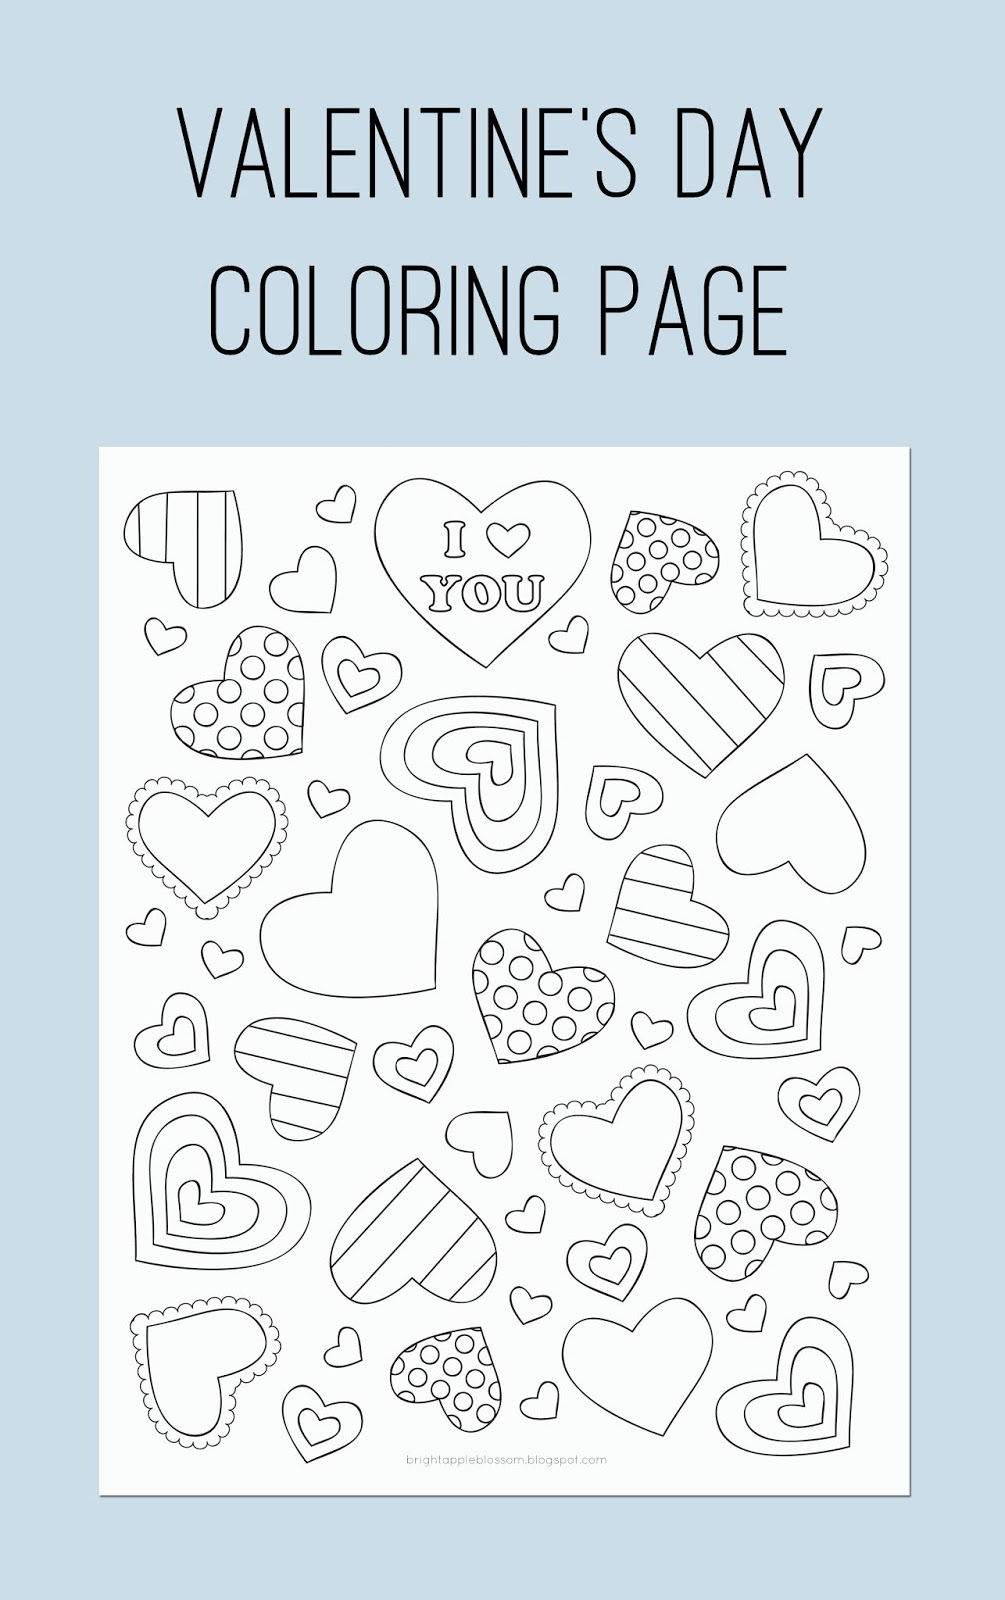 Free Printable Valentine's Day Coloring Page - Bright Apple Blossom